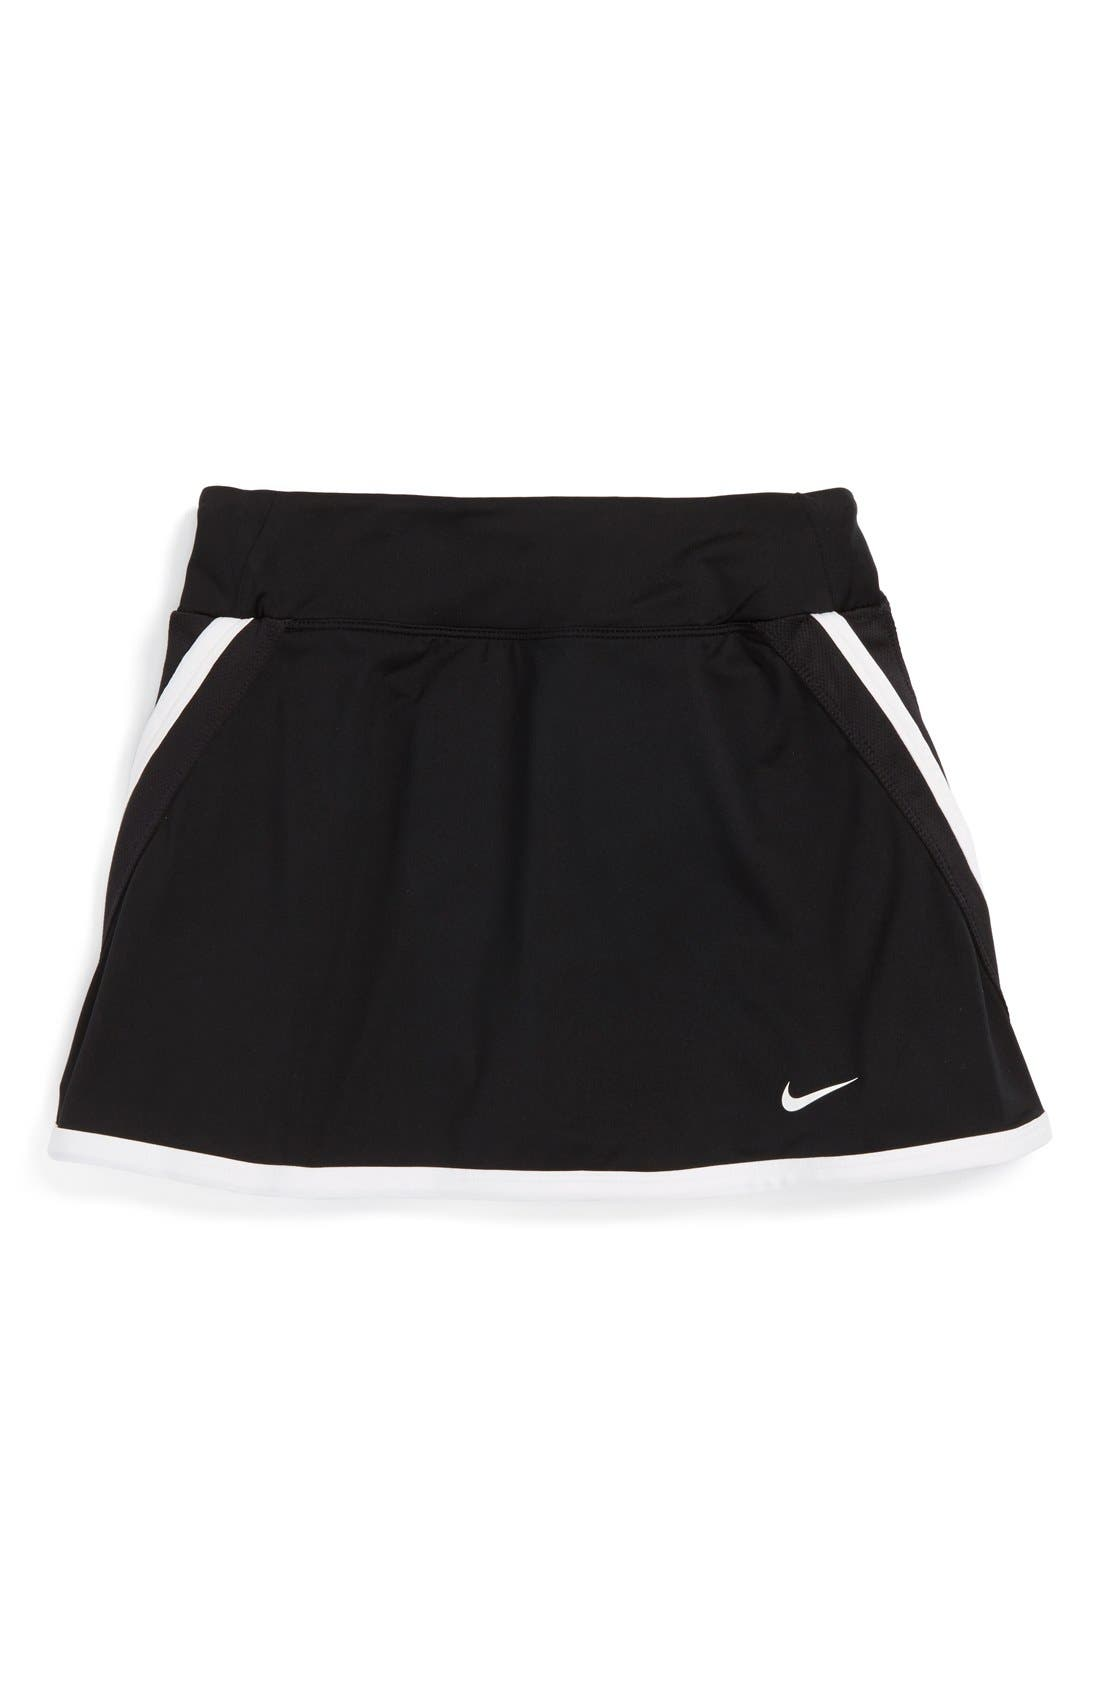 Main Image - Nike 'Power' Dri-FIT Tennis Skirt (Big Girls)